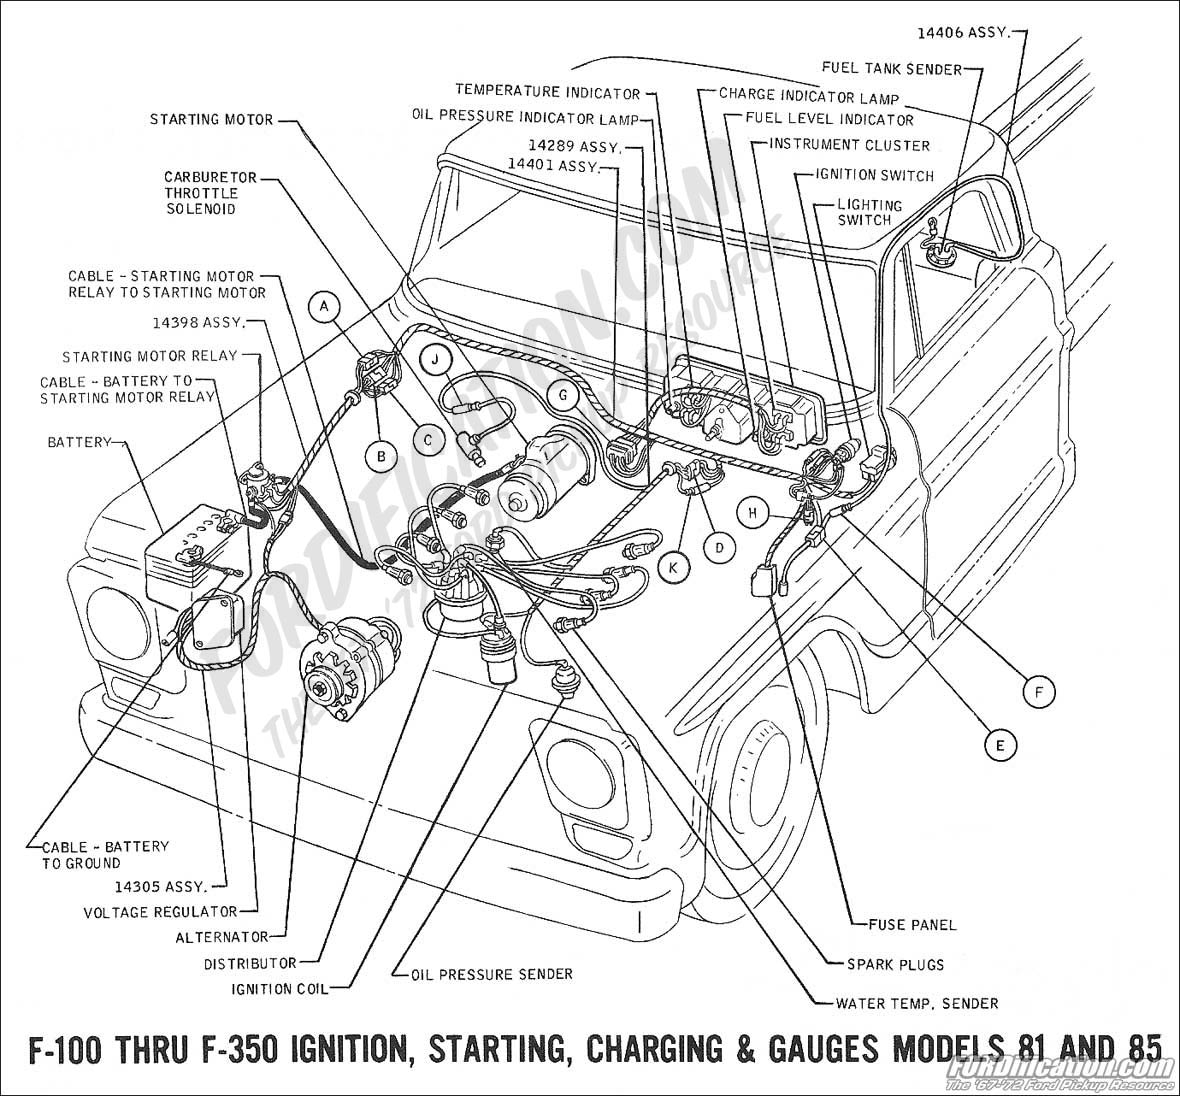 1968 Ford F 250 Radio Wiring Diagram Just Another 2003 Mustang Dist Simple Diagrams Rh 8 Zahnaerztin Carstens De Turn Signal